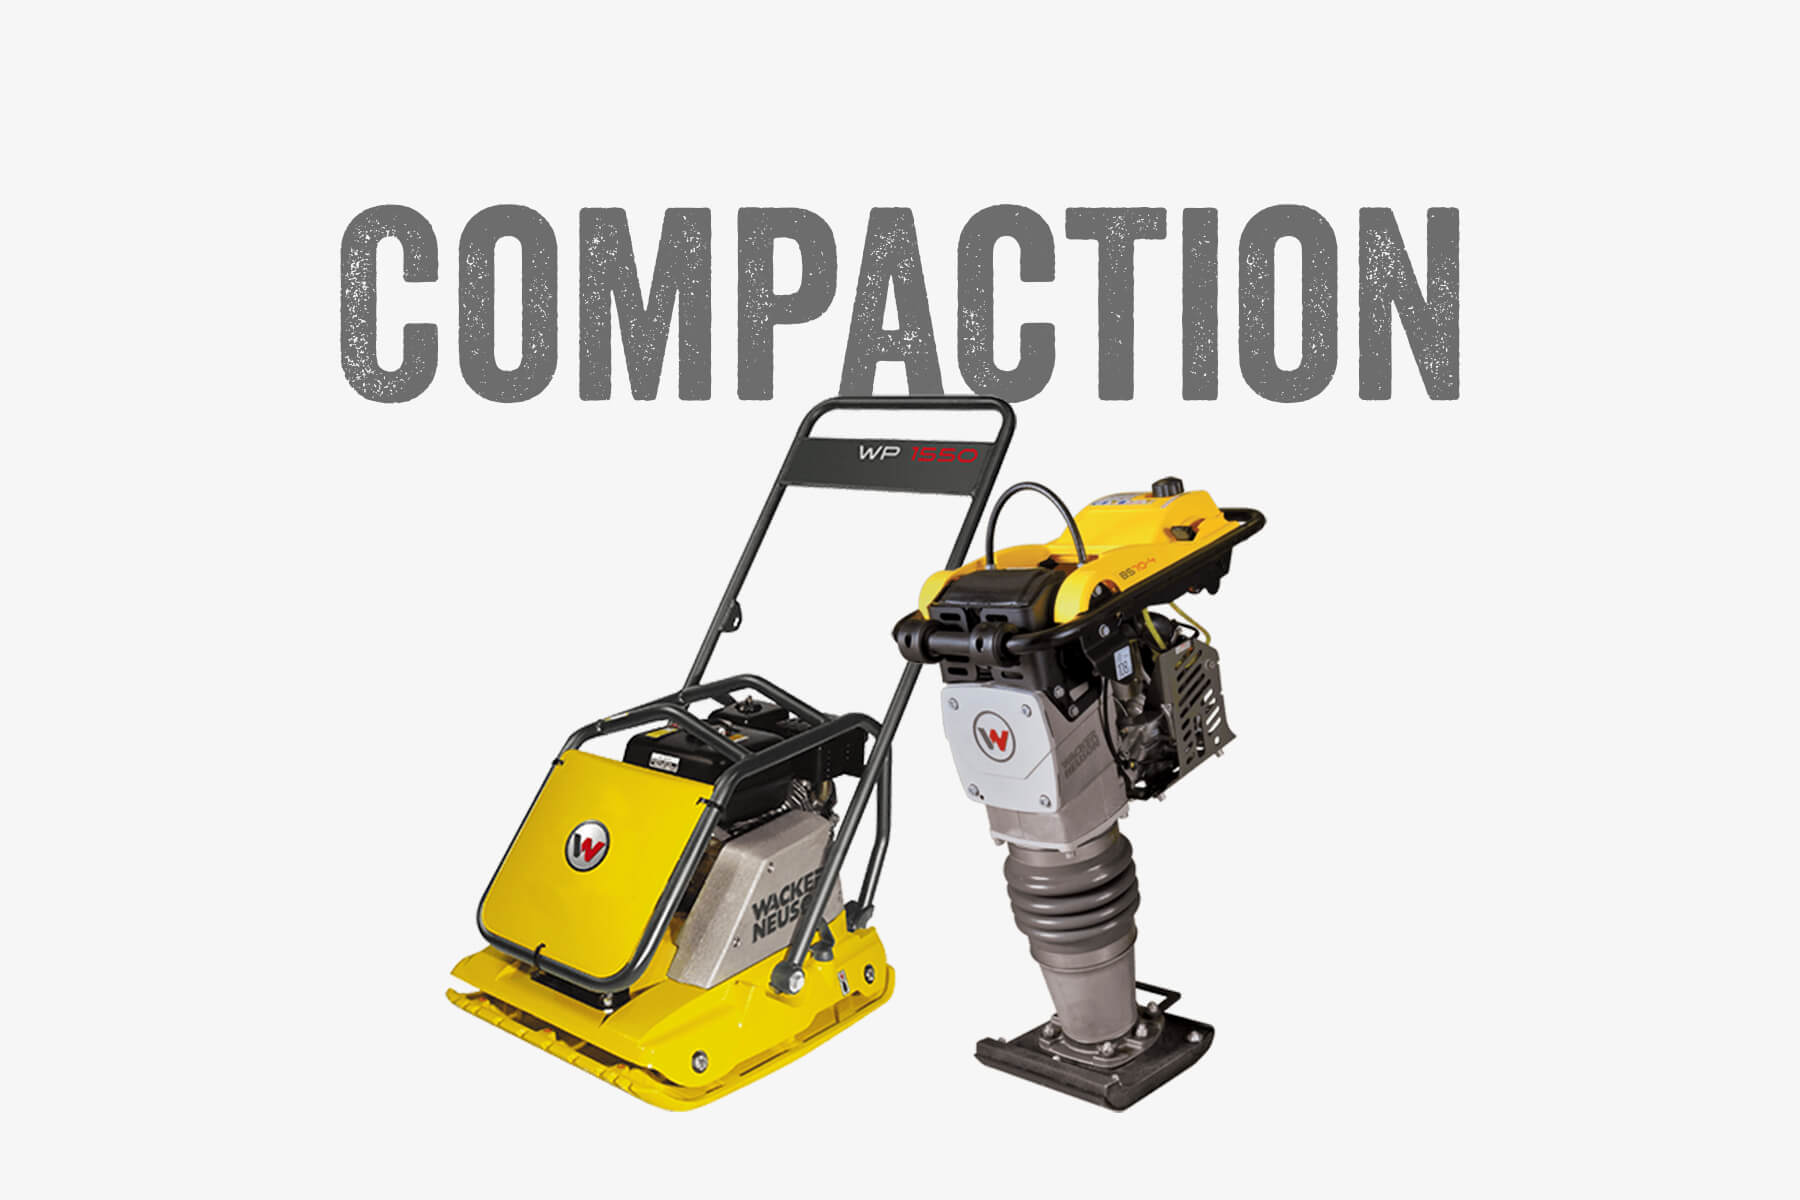 Compaction